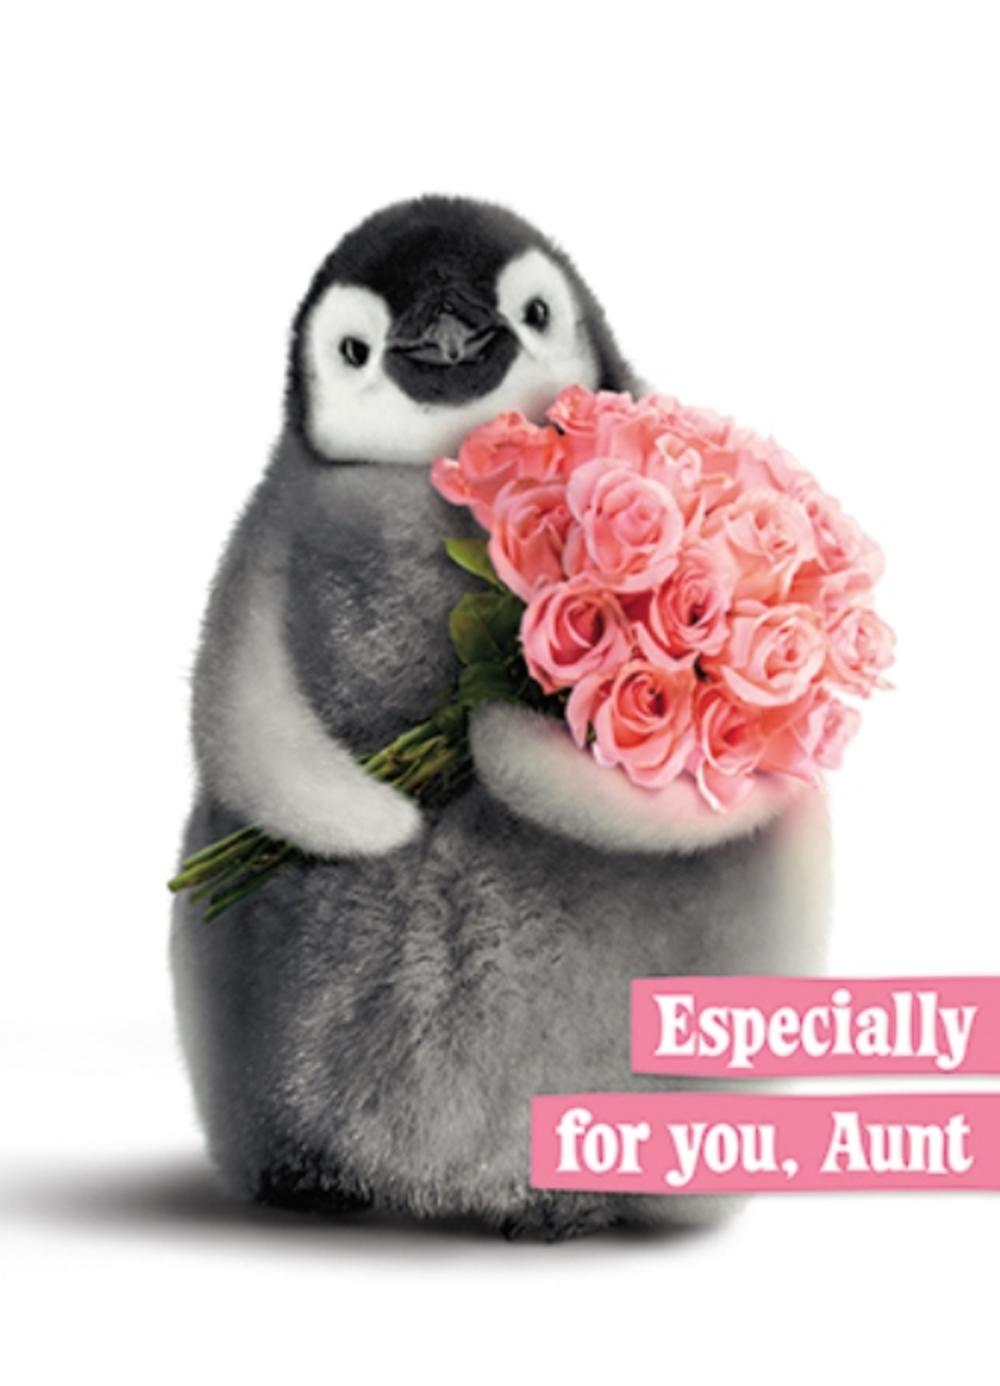 Avanti Aunt Birthday Humour Greeting Card